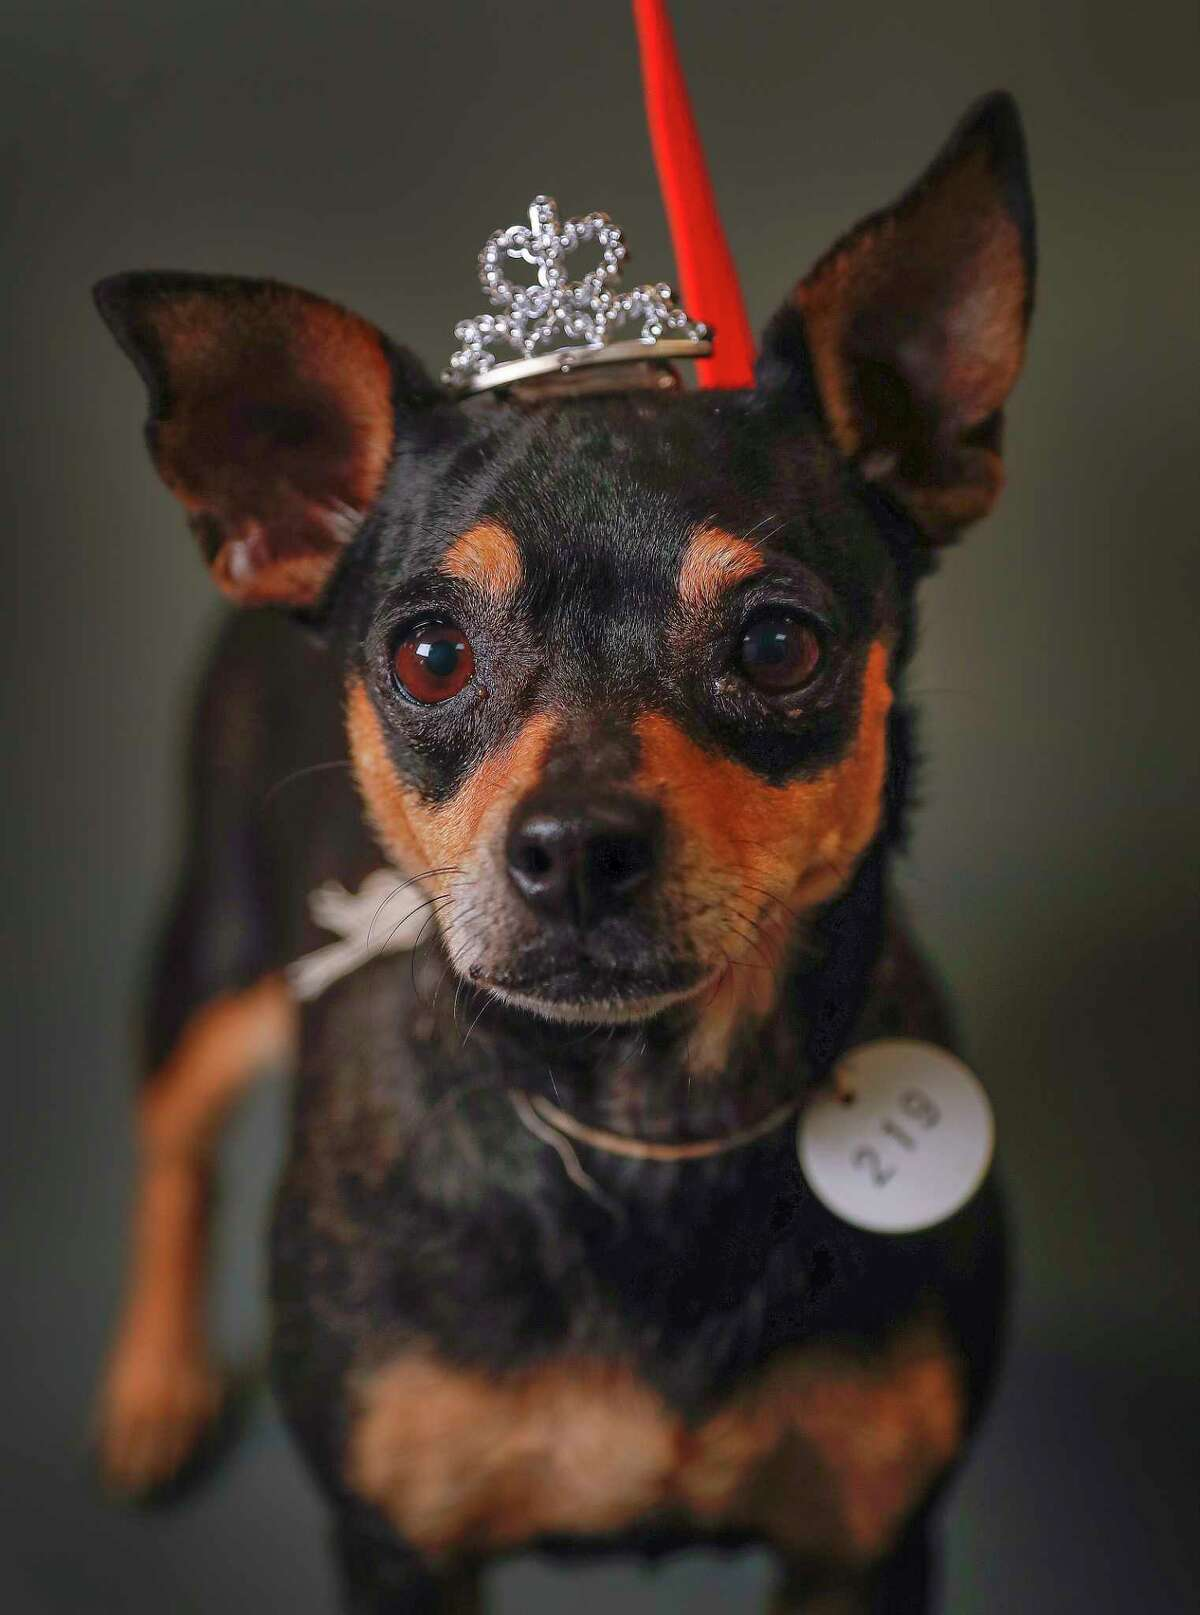 Princess is a 6-year-old, female, Chihuahua mix available for adoption at the Harris County Animal Shelter, in Houston. (Animal ID: A534361) Photographed Tuesday June 4, 2019. Princess is a friendly, and sweet dog, who was brought to the shelter because her owners were moving.